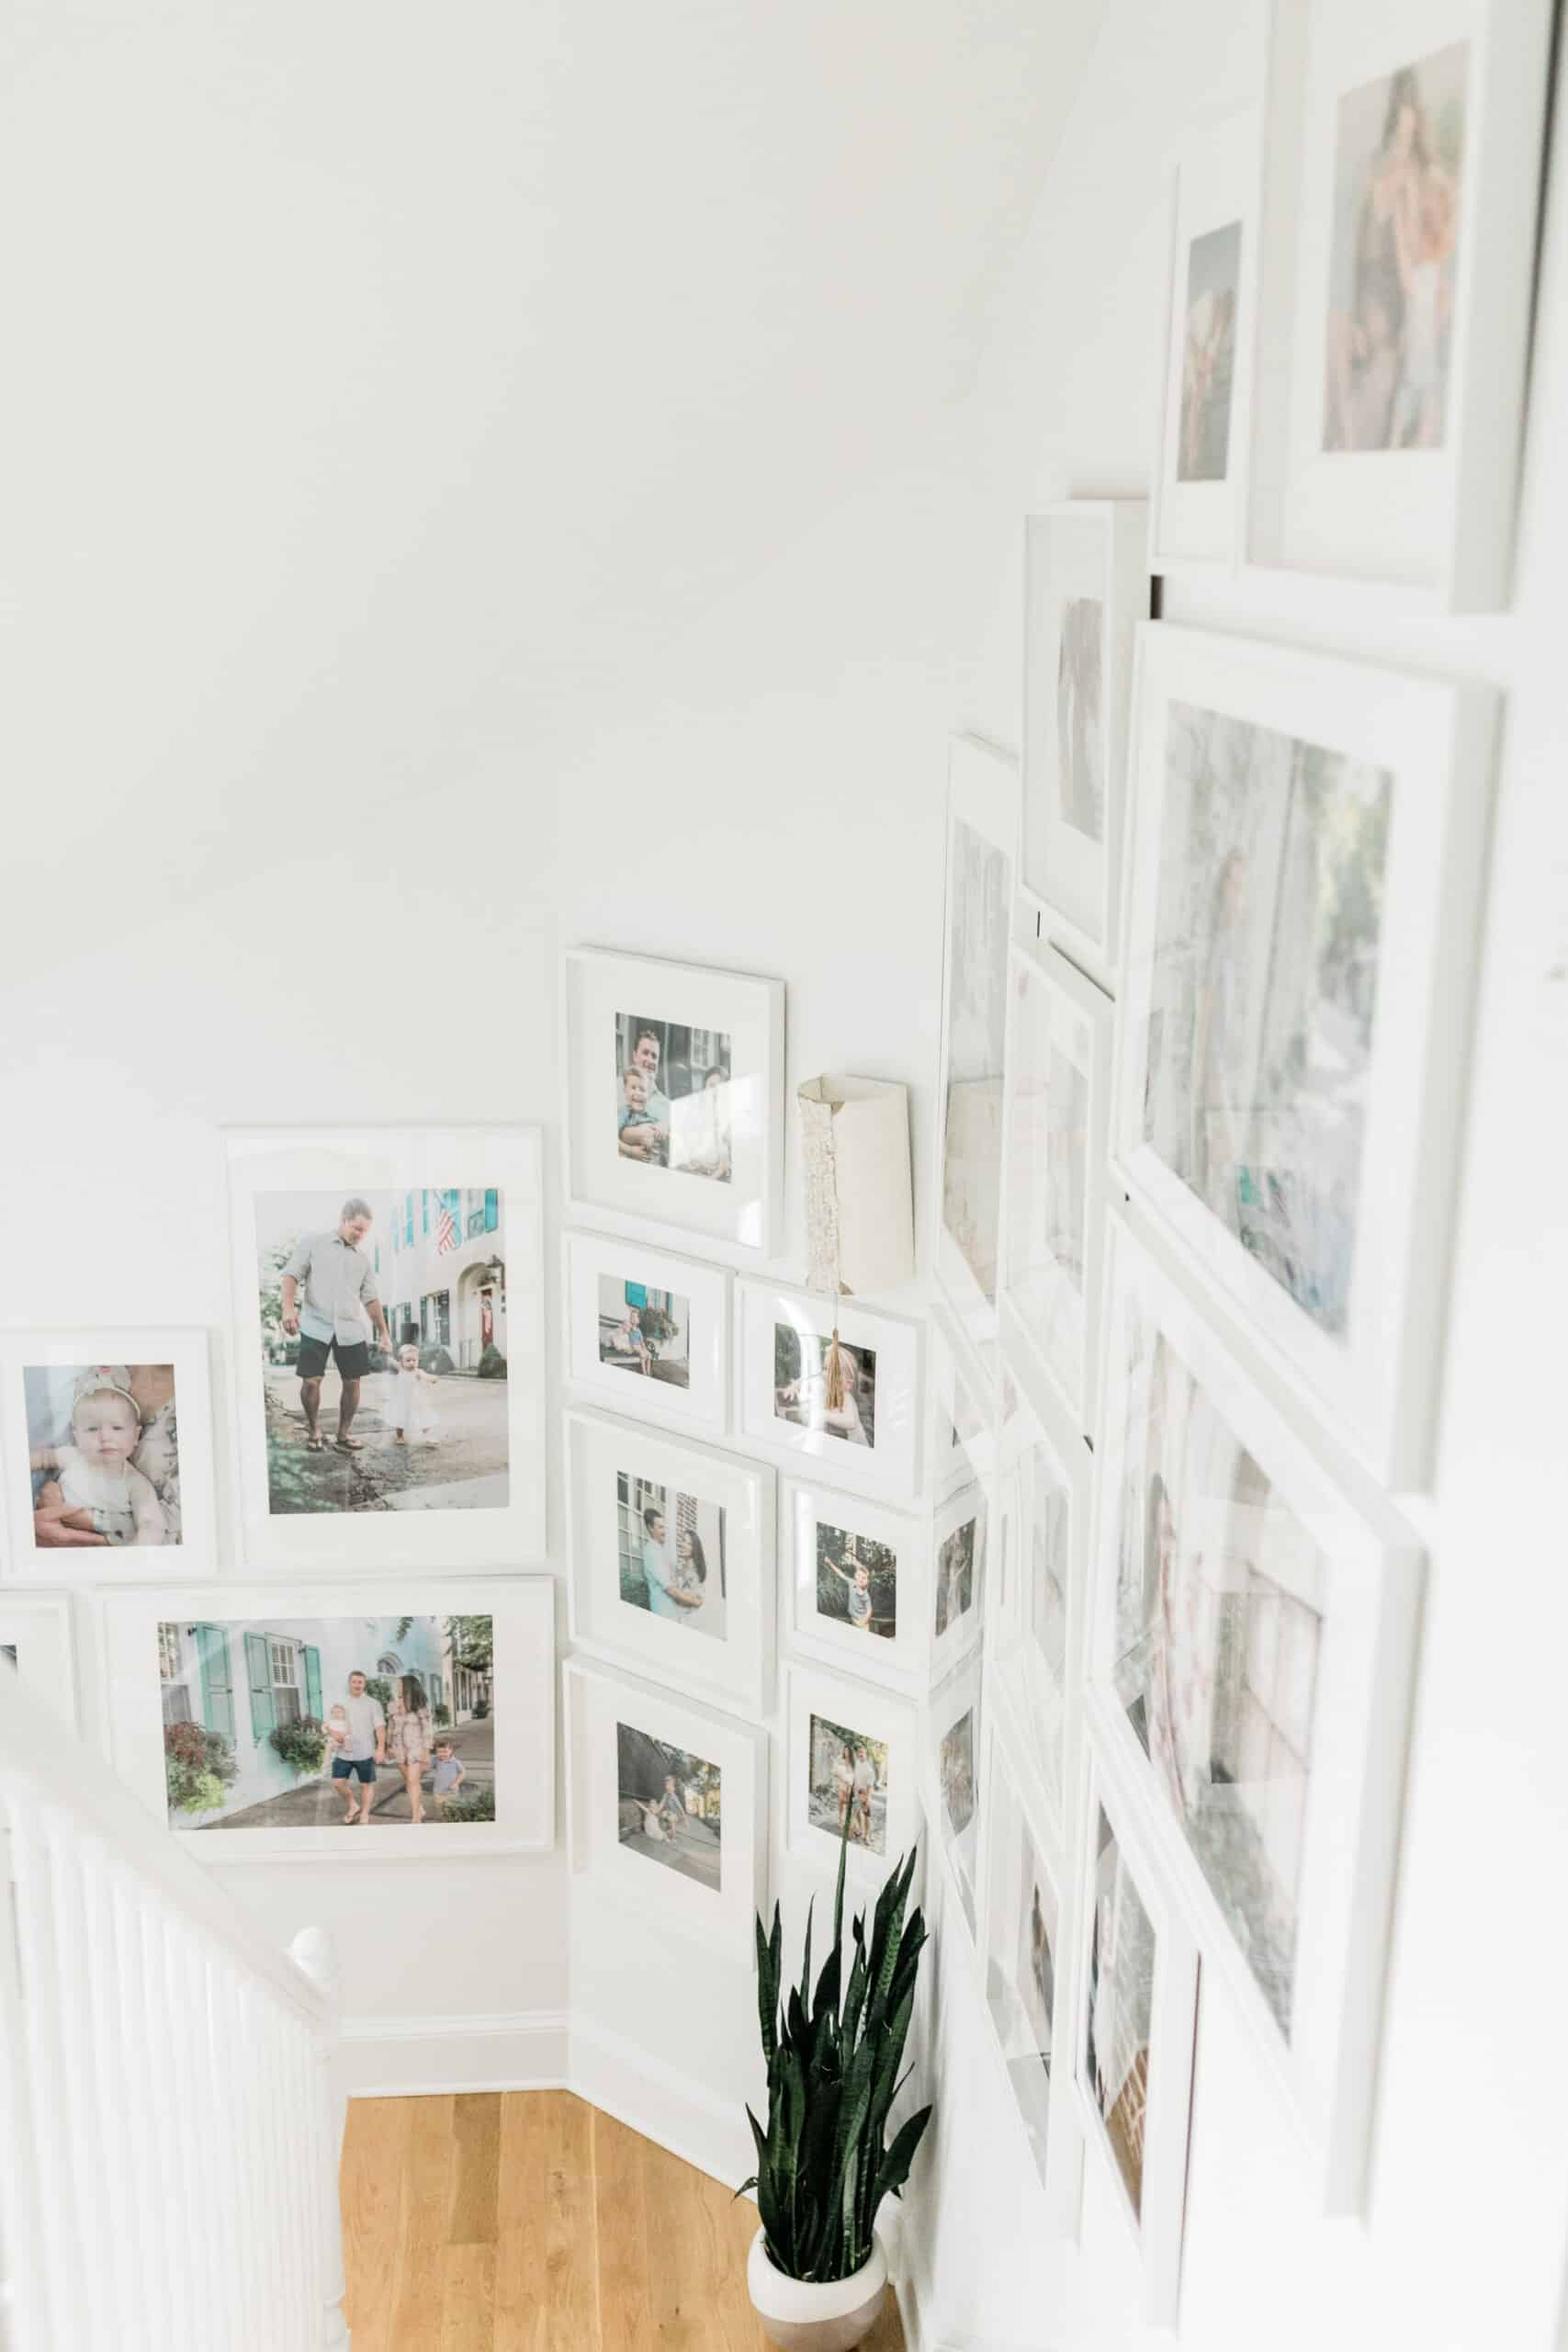 How to design a large staircase gallery wall using Ikea Ribba picture frames. #gallerywall #picturewall #pictureframes #ikeahack #ikearibba #ikea #gallery #staircasedecor